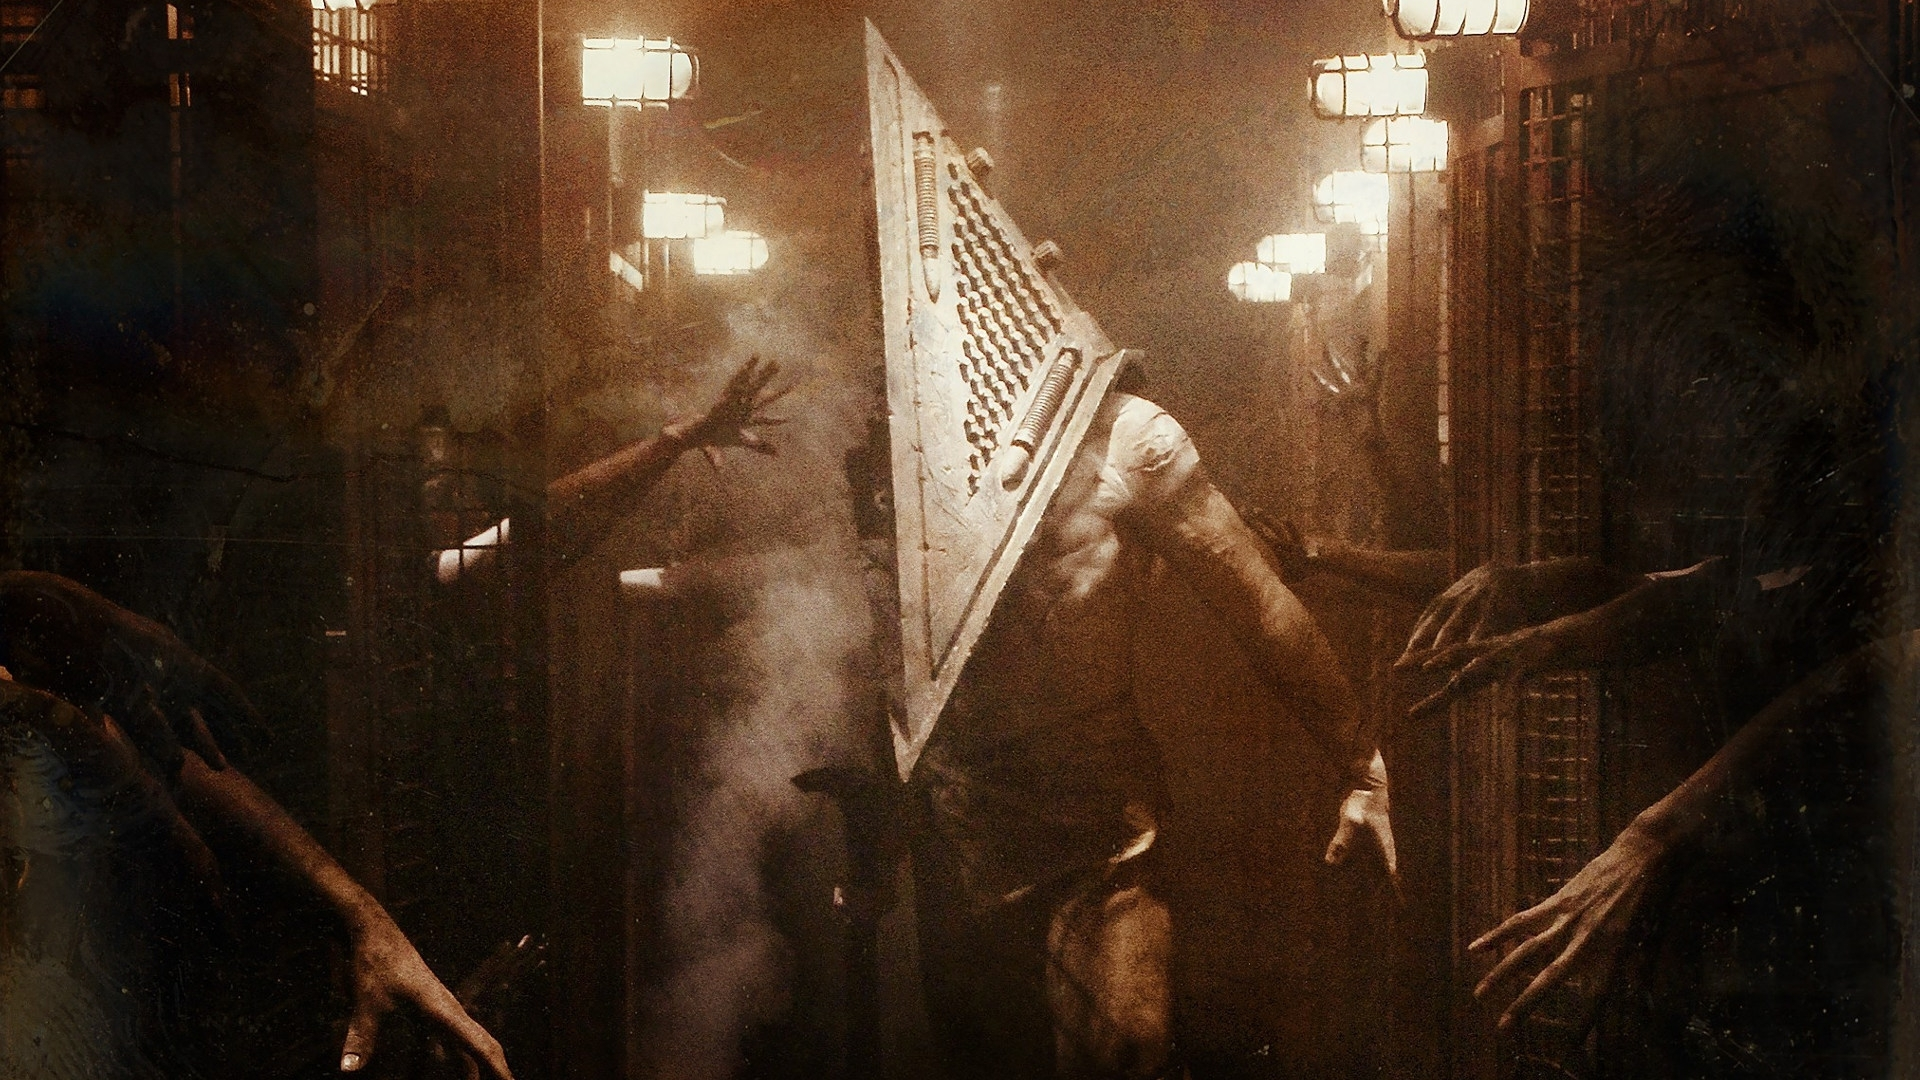 silent hill wallpapers, hdq cover silent hill wallpapers for free